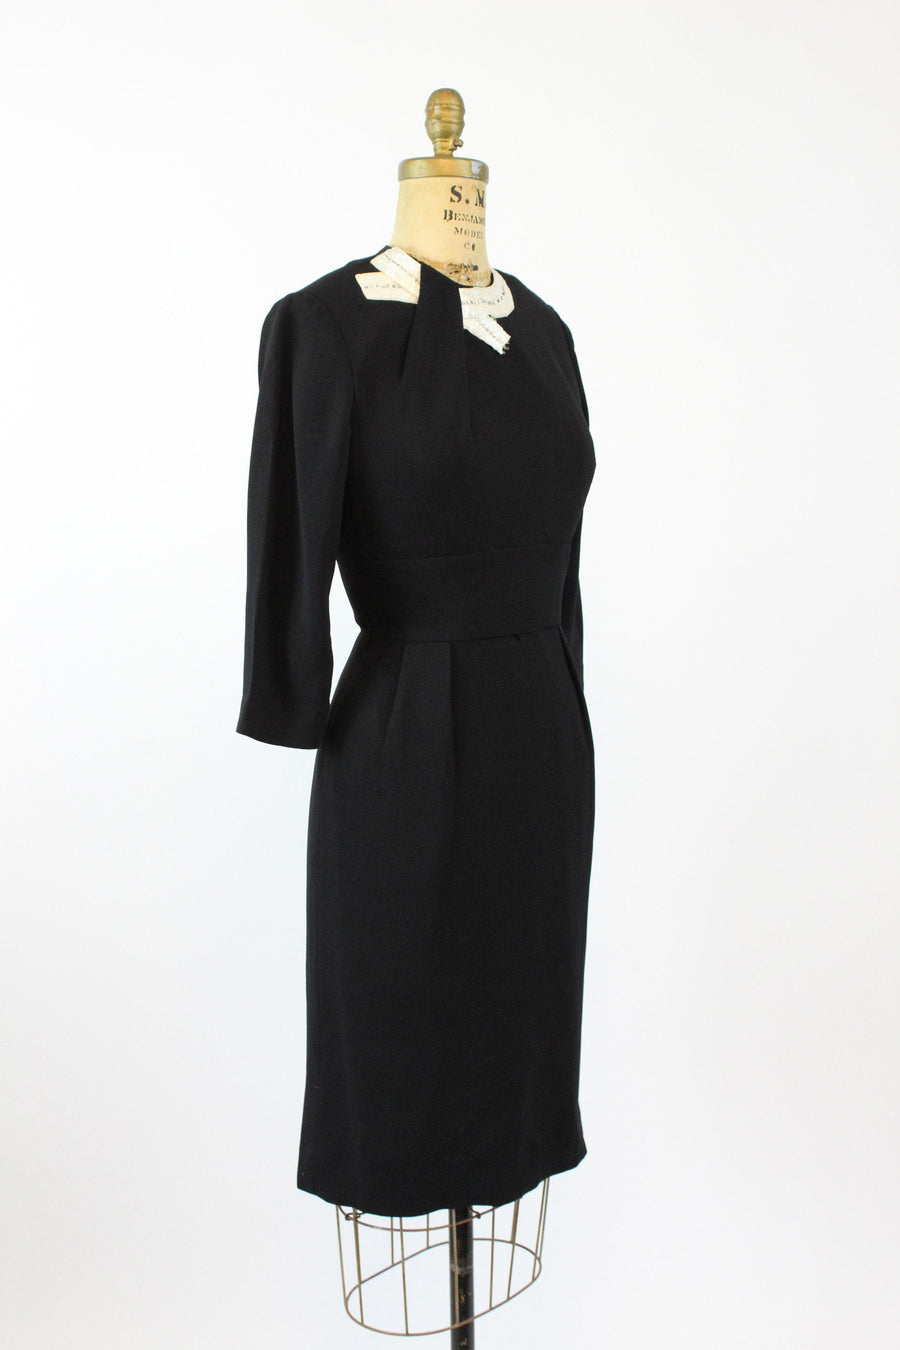 1960s black wiggle dress xs | vintage beaded collar dress | JMC